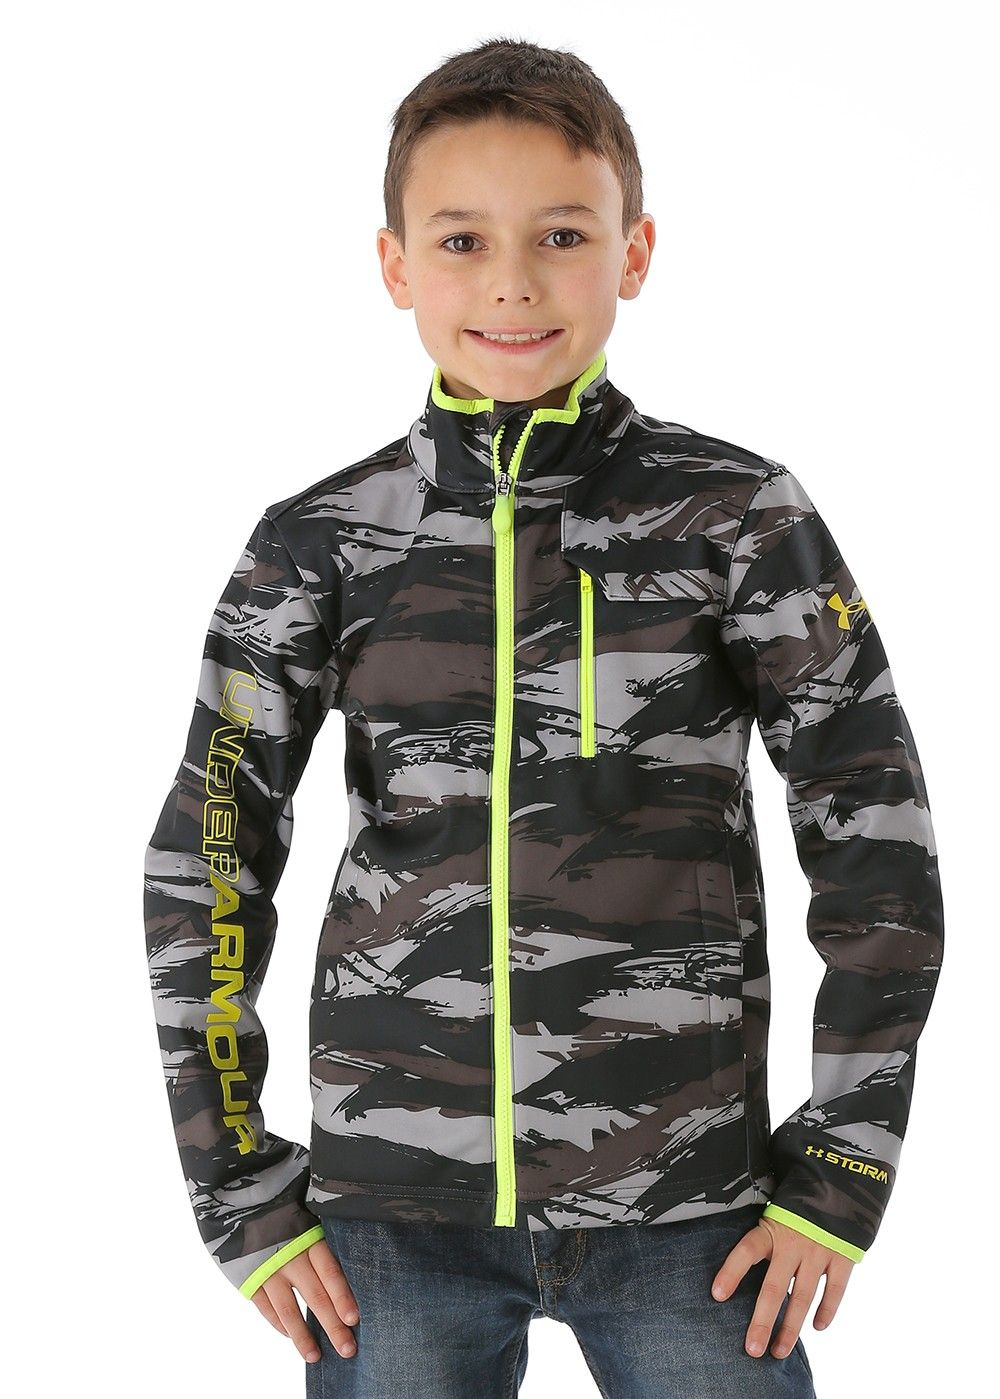 separation shoes d6668 e18f1 Youth Wearing in Under Armour for the winter   Under Armour Boys Coldgear  Infrared Softershell Jacket (Charcoal)